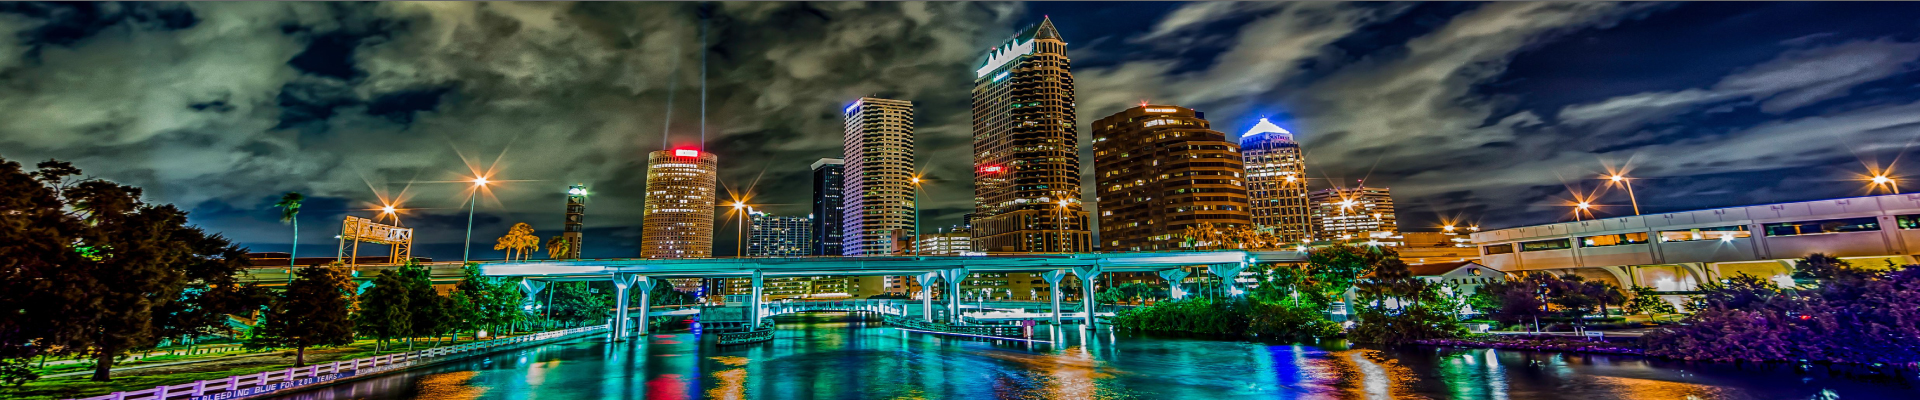 tampa-night-1920x400a